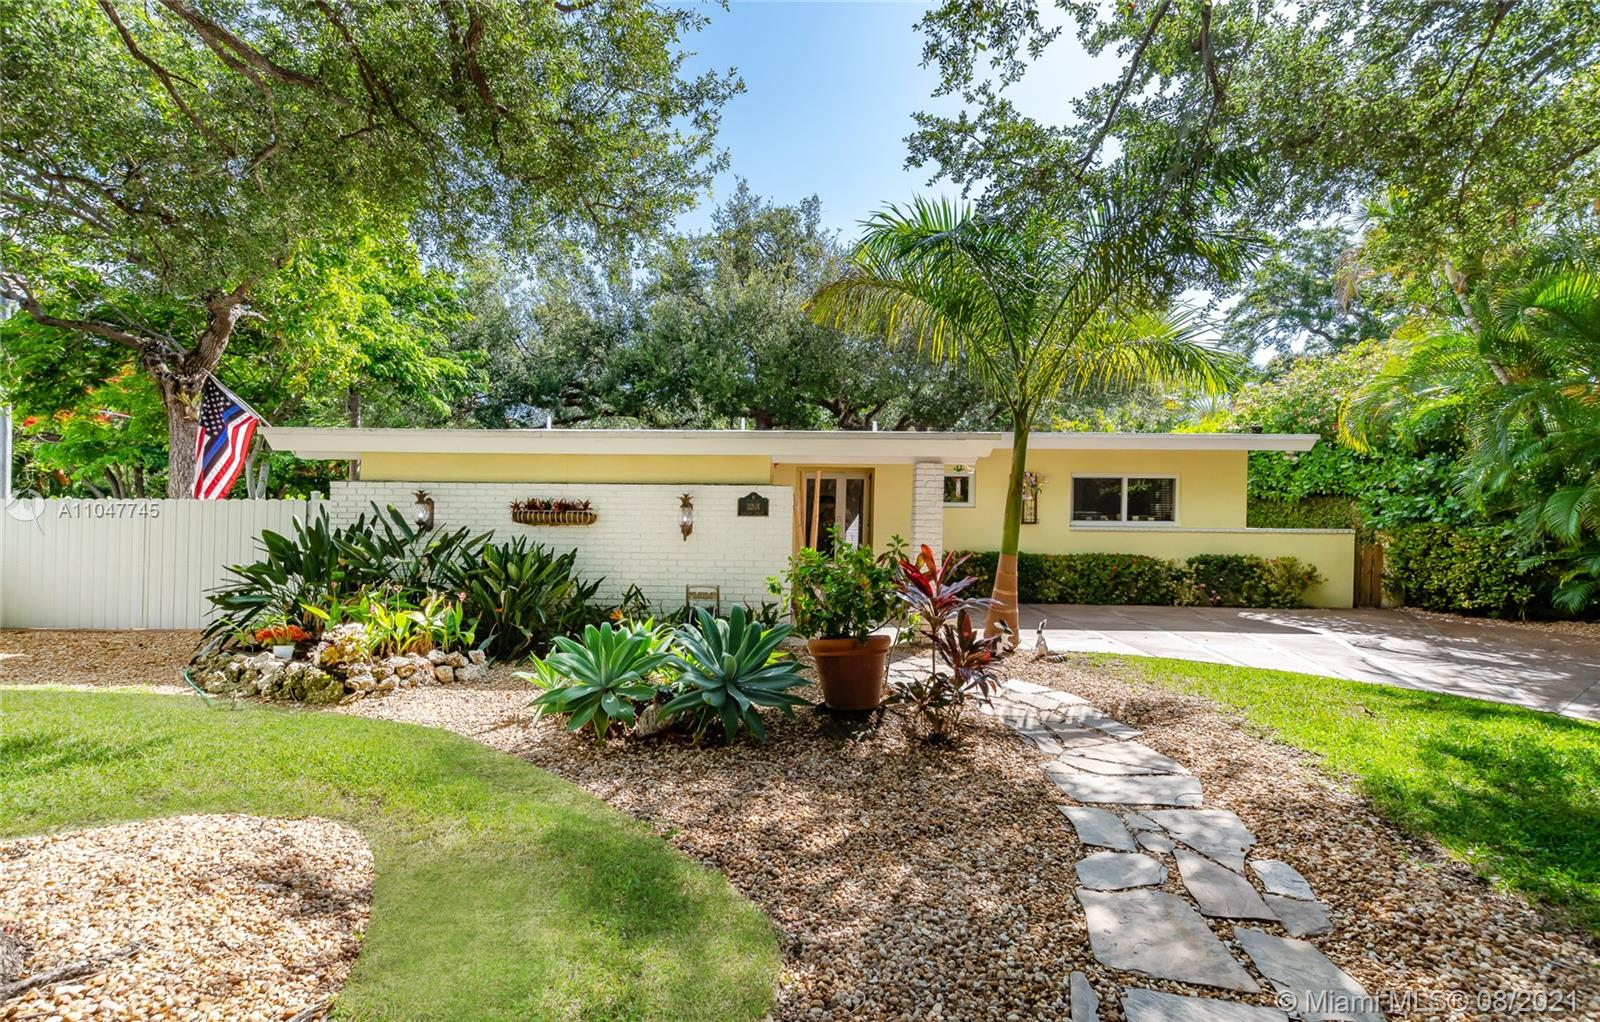 LUCKY YOU- Back on Market! North Coconut Groves Orchid Charmer! 2-bed, 2-bath Turn-Key, stylish home, 2 blocks from Biscayne Bay! Great upgrades to include kitchen appliances & water heater upgraded in 2019. Home features High Impact Windows, storage, 12 x 16 air conditioned shed & renovated bathrooms. You'll love the  screened-in porch & spacious backyard with patio, trees, gorgeous foliage, Orchids & recently planted Clusia hedge. Huge area to entertain & host special events or enjoy the zen sanctuary. Located in low traffic corner lot on cul-de-sac. Plenty of parking, room for a boat & golf cart. Minutes to Kennedy Park, Fresh Market, Montys, StarBucks, Ransom School, Coral Reef Yacht Club, Regatta Harbour, Anatomy Luxury Gym & Cocowalk! High Elevation-No Flood Zone. A pleasure to show